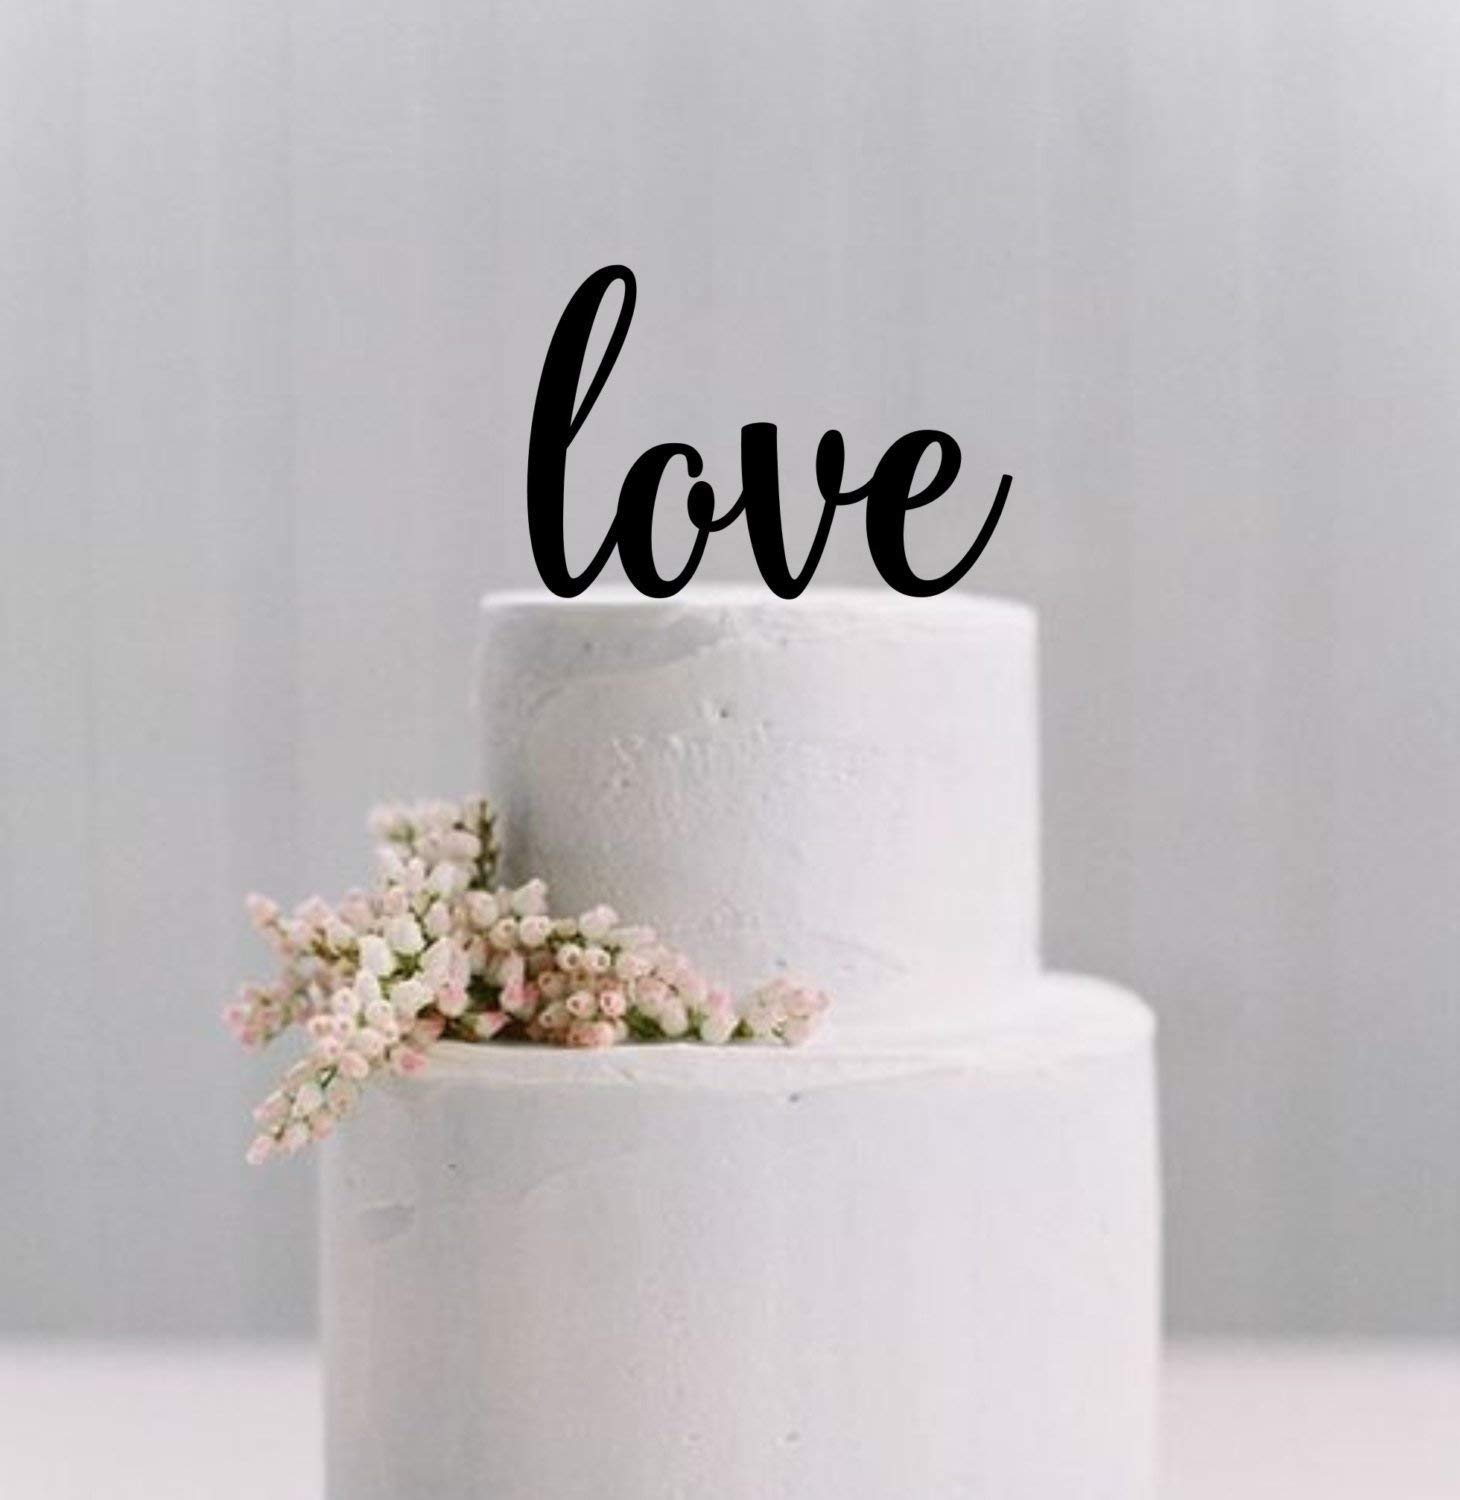 Wedding Cake Topper Love Cake Topper Simple Elegant Cake Topper Wedding Cake Decoration Amazon Co Uk Handmade